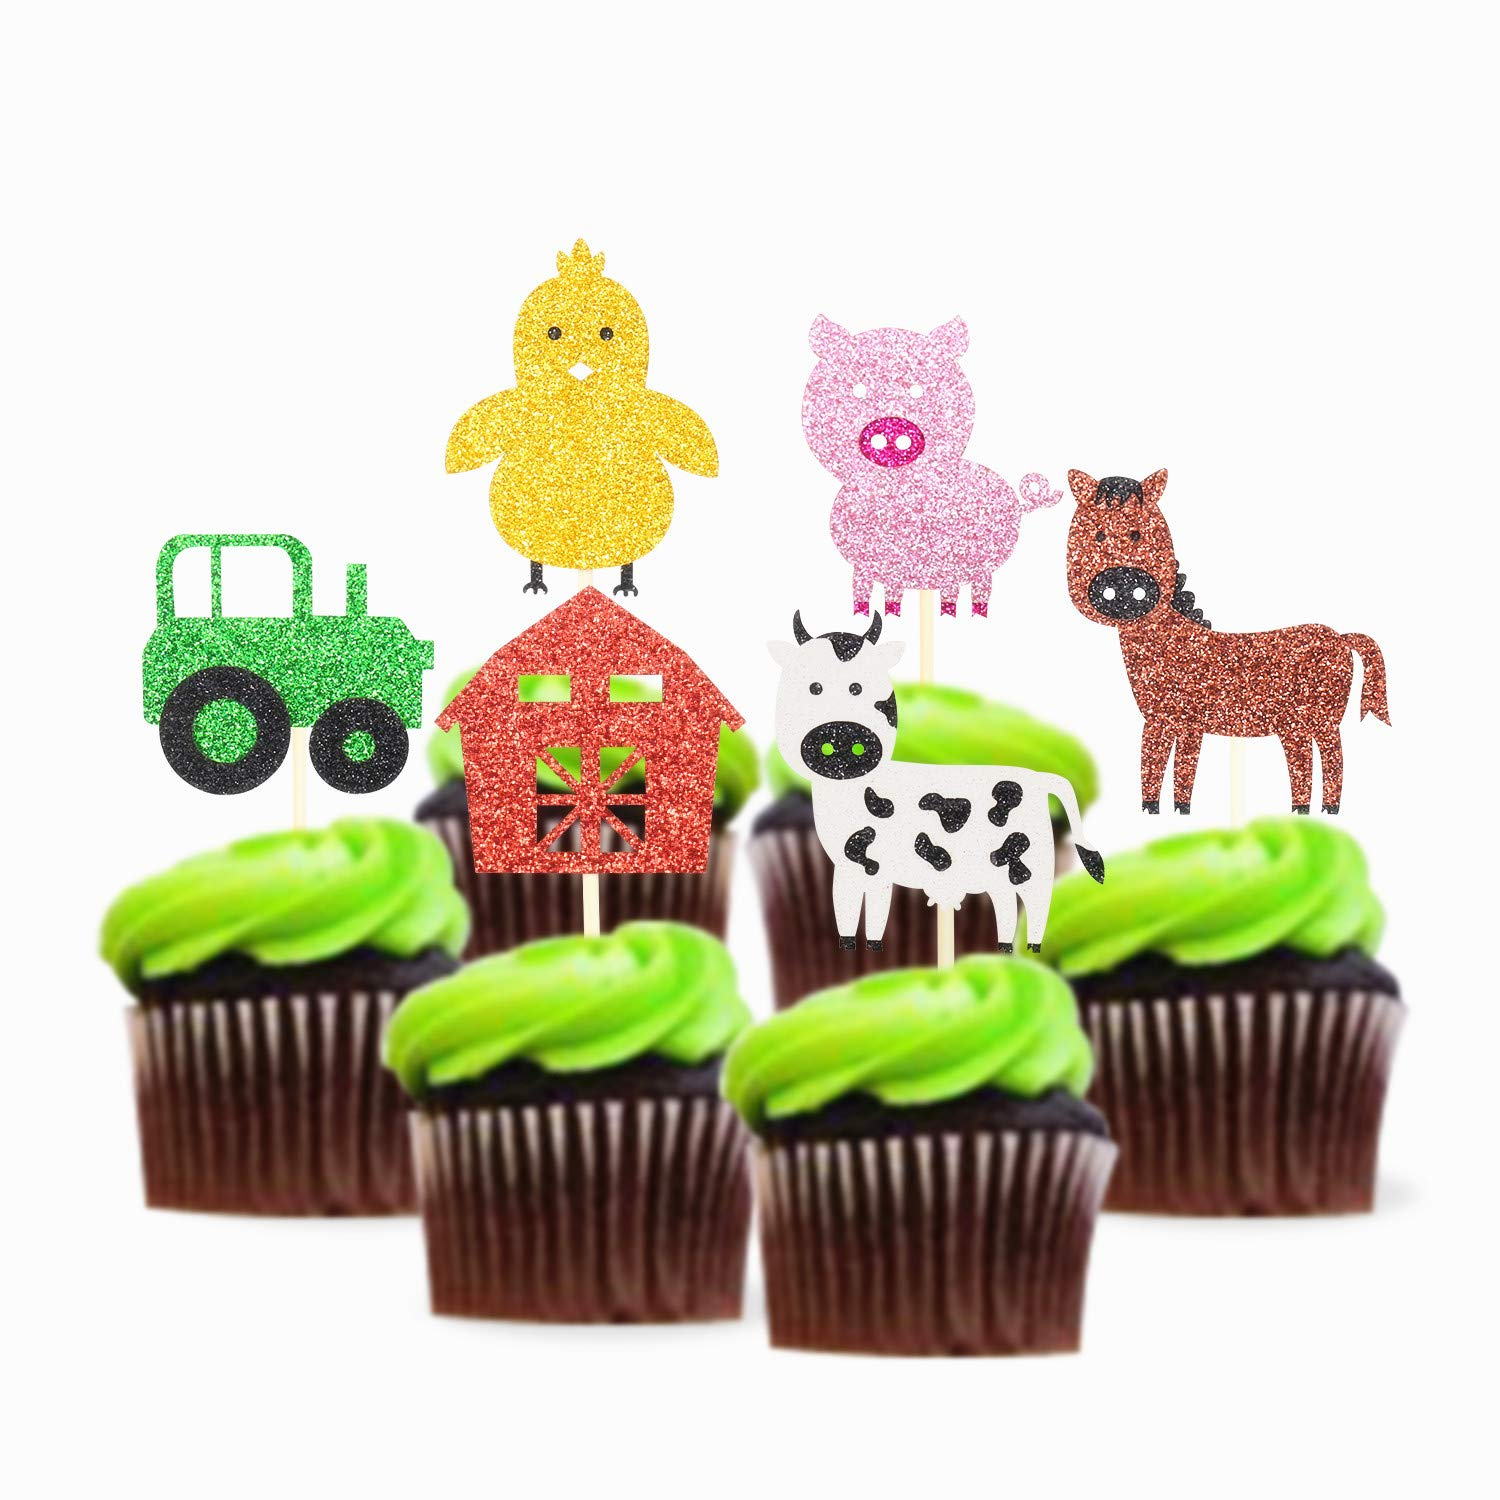 Glitter Farm Zoo Animal Cupcake Topper Appetizer Decorations Cake Picks 24 pieces Birthday Party Baby Shower Supplies by SIFAN